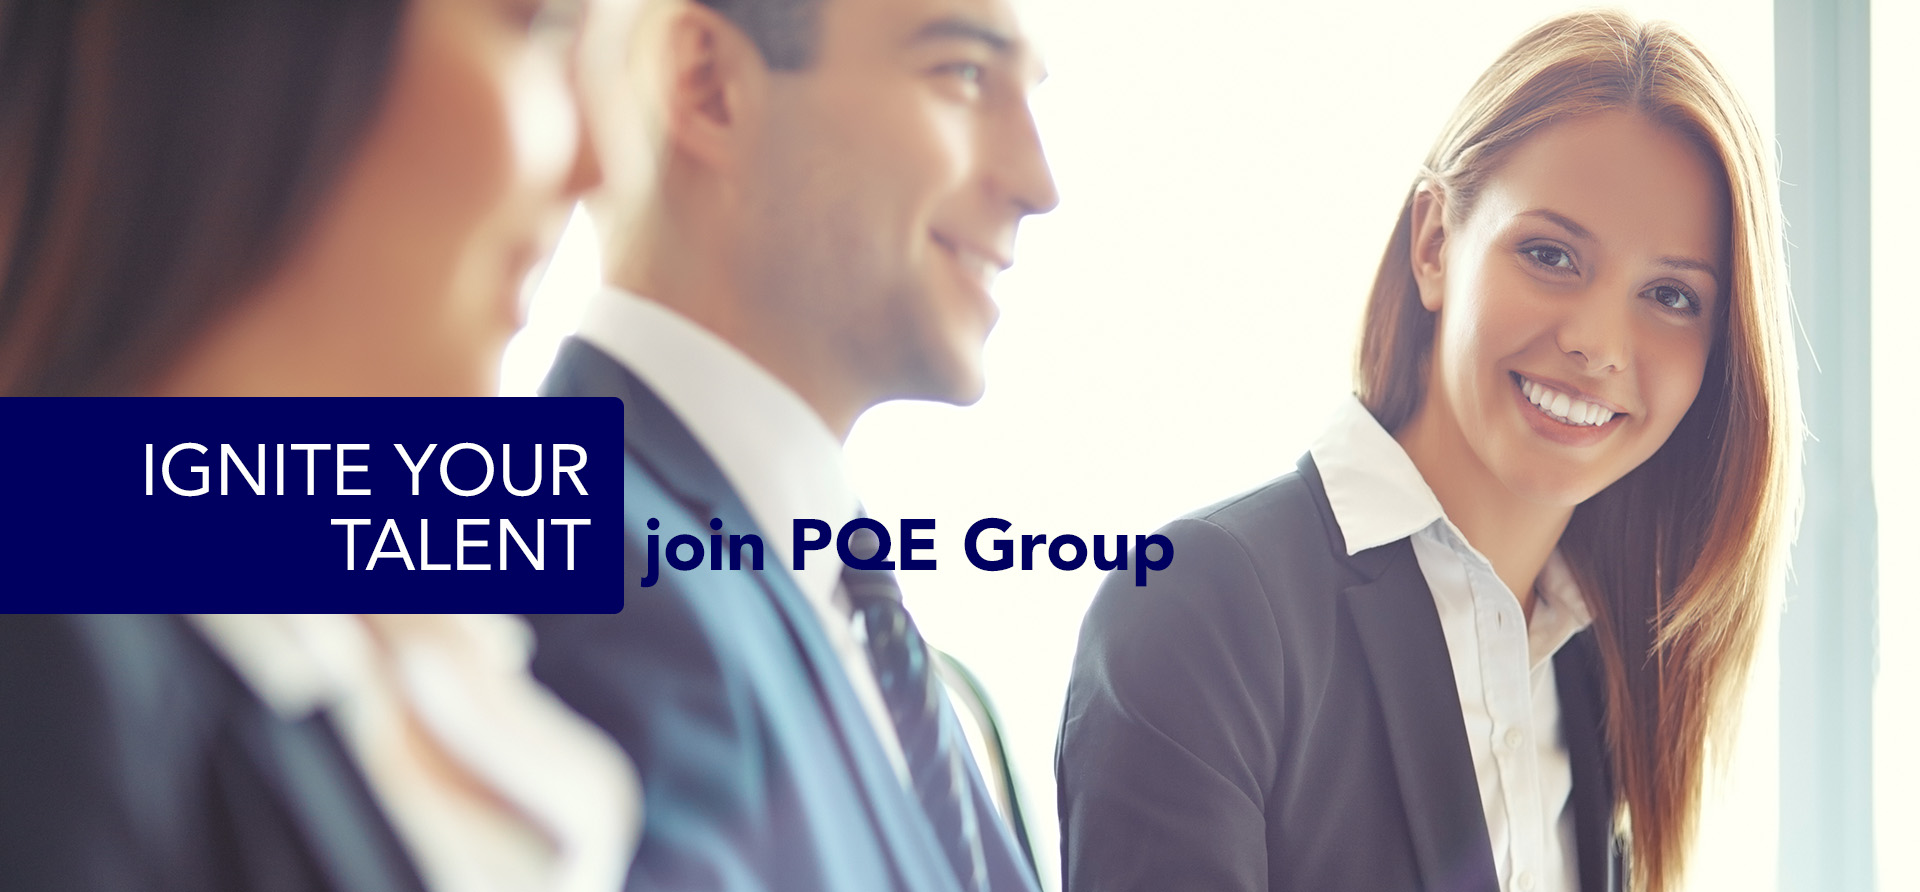 Ignite your talent. Join PQE Group | Careers @ PQE Group